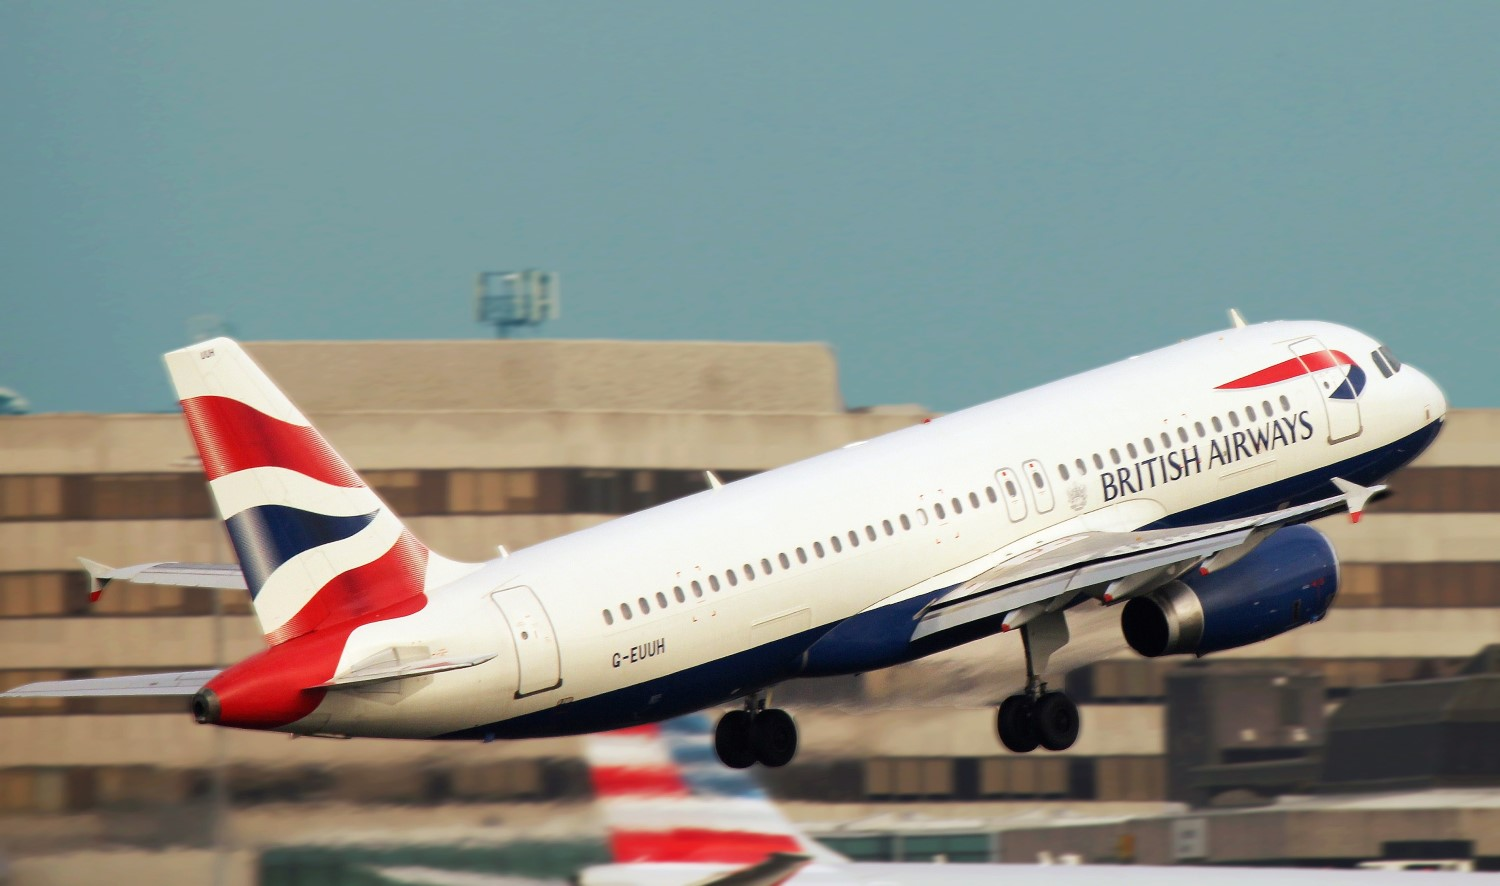 Brexit's consecuences for airlines